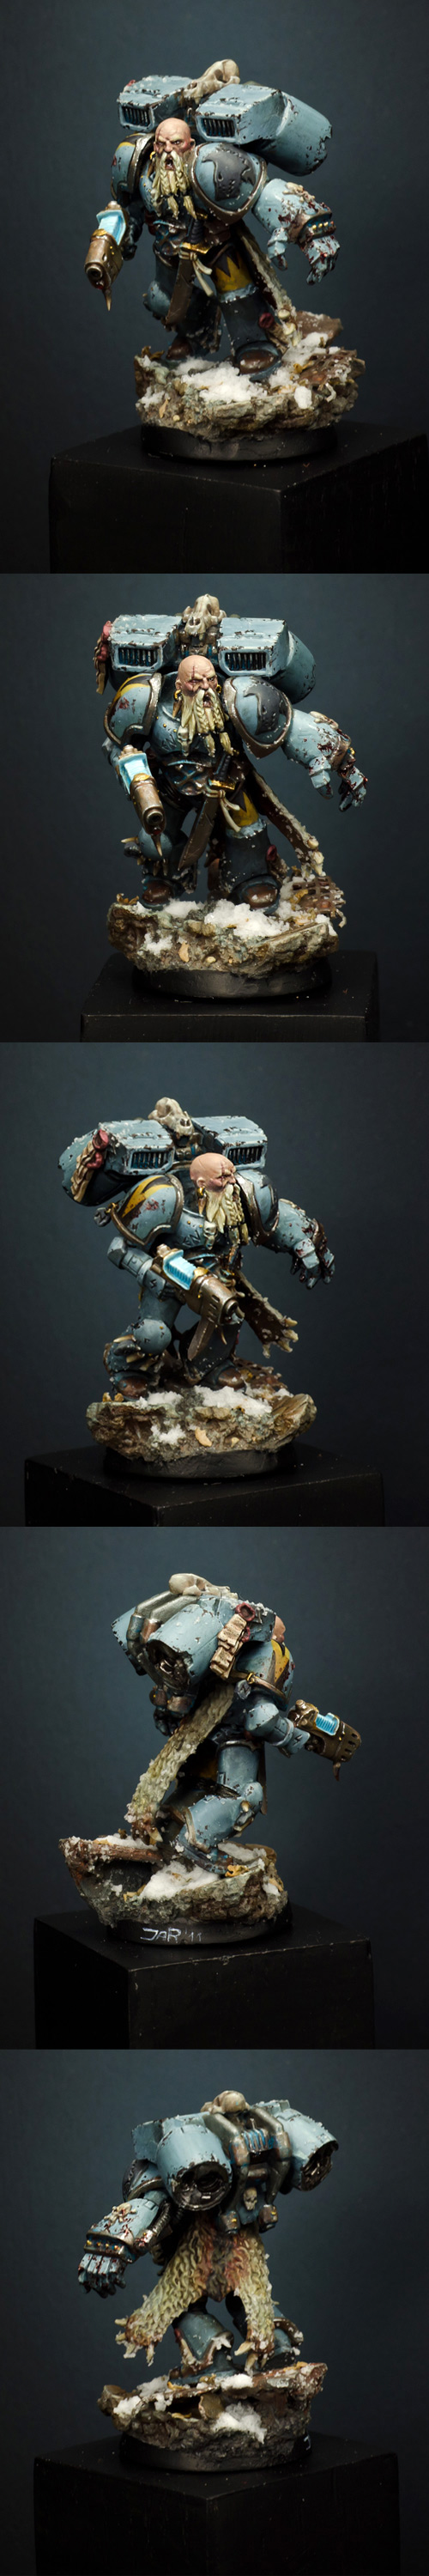 Son of Russ - Brother Freyron